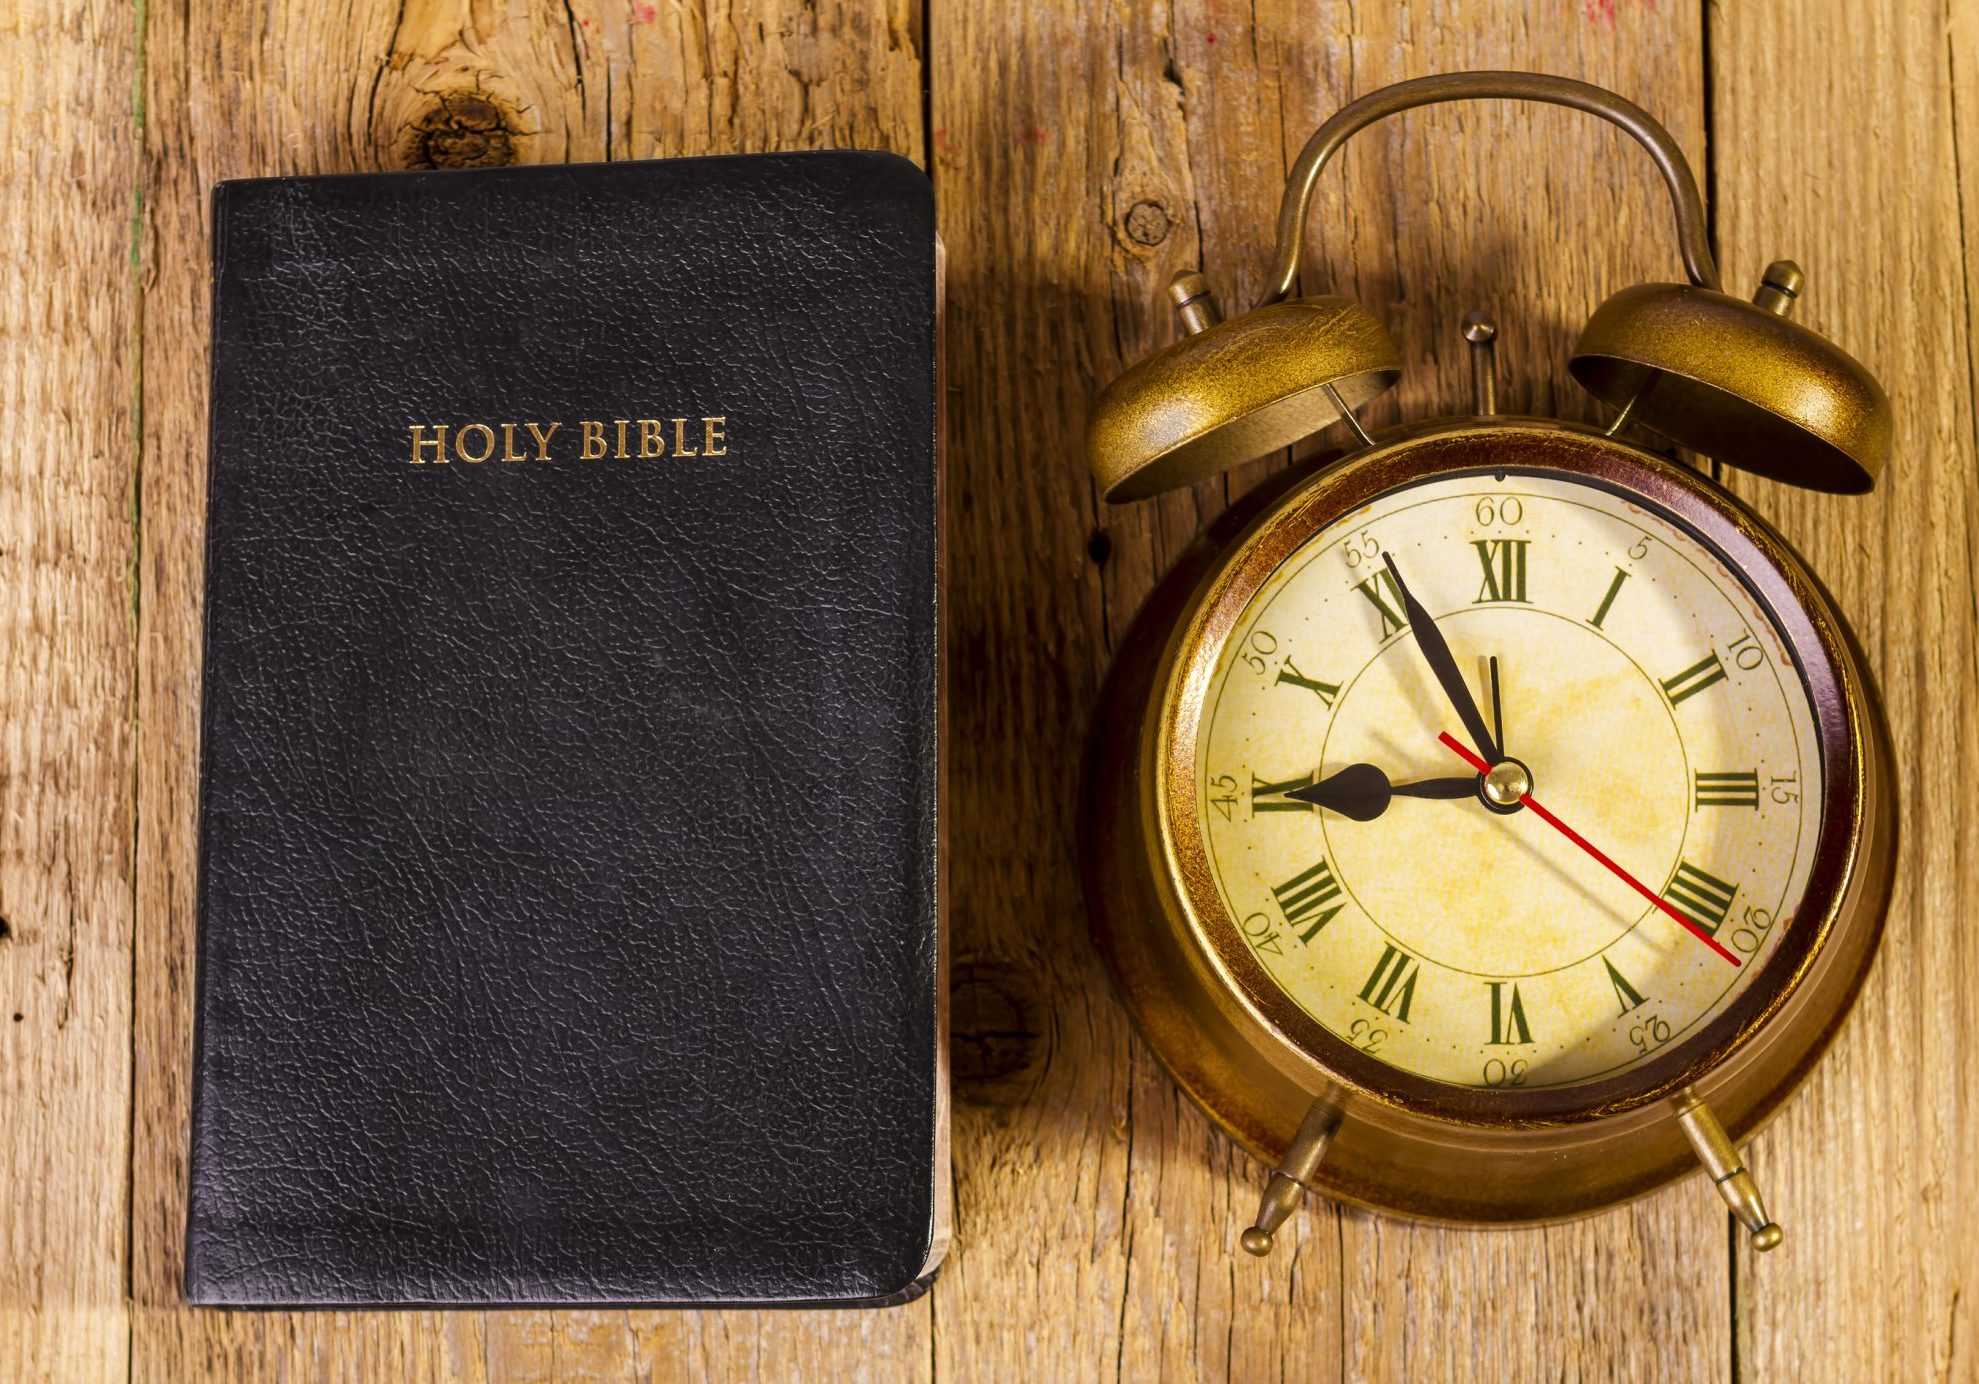 bigstock-Bible-with-Clock-on-Wood-65642572